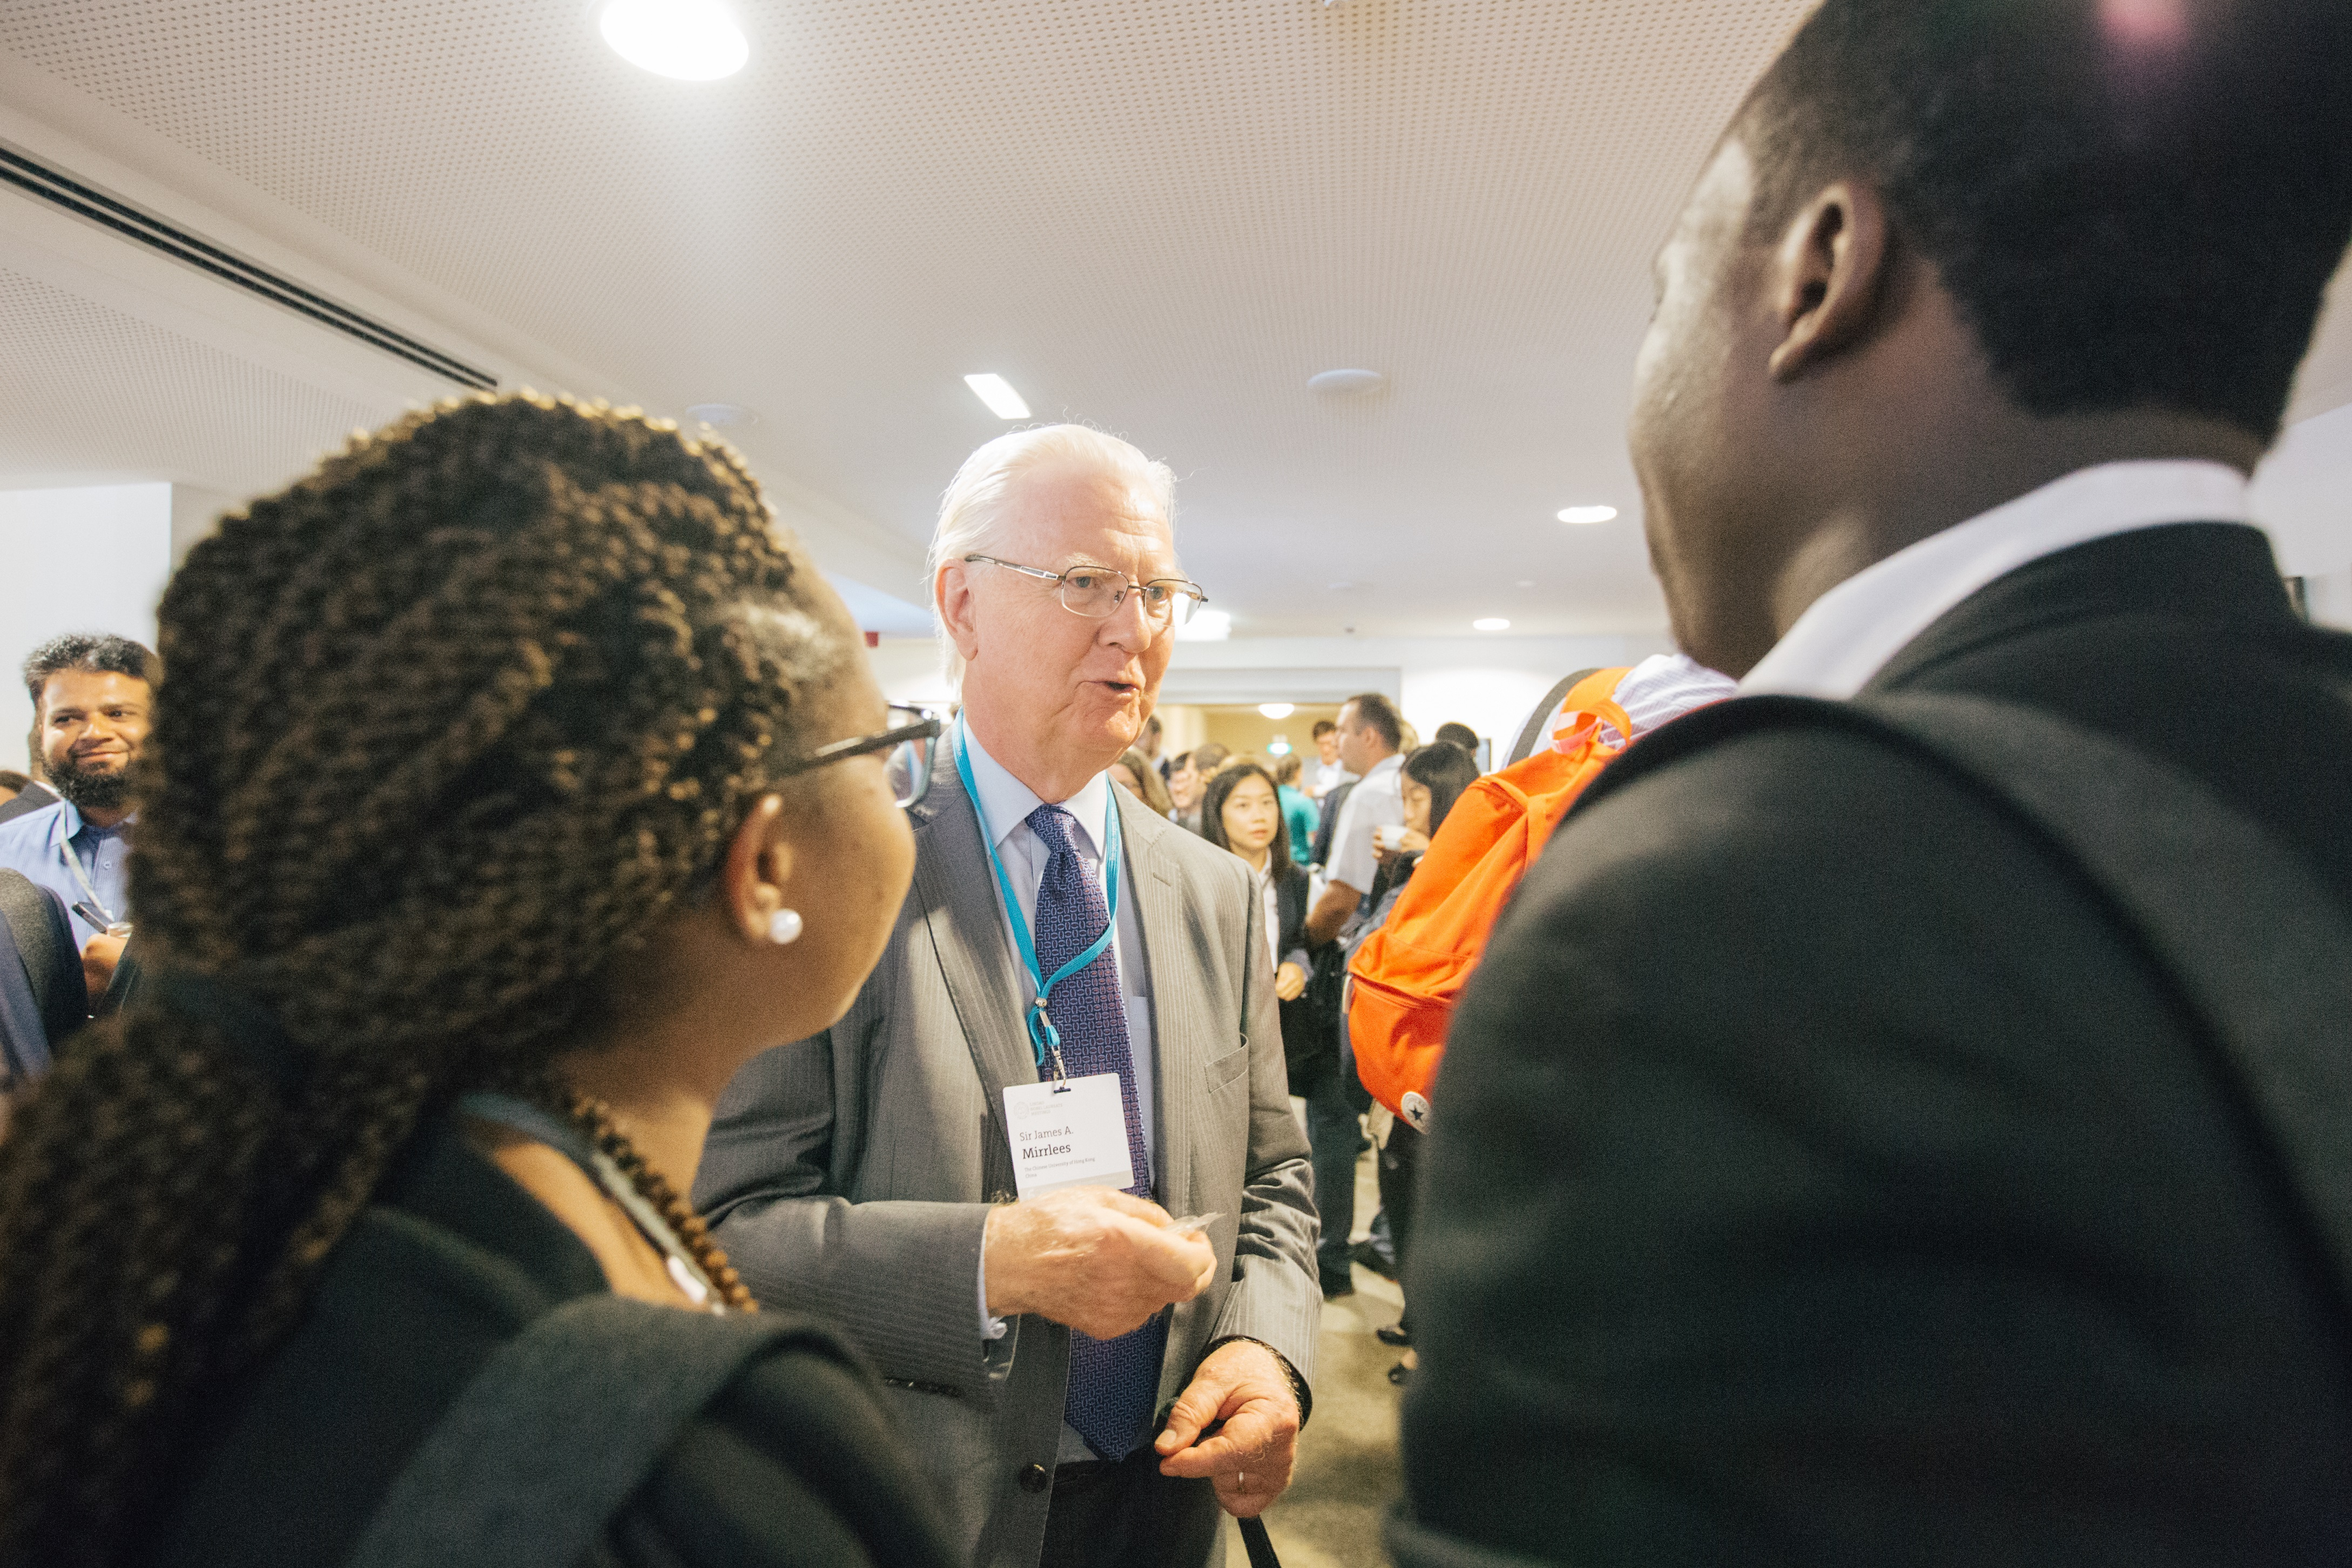 Sir James Mirrlees talking to young economists after his lecture at the 6th Lindau Meeting on Economic Sciences. Picture/Credit: Julia Nimke/Lindau Nobel Laureate Meetings